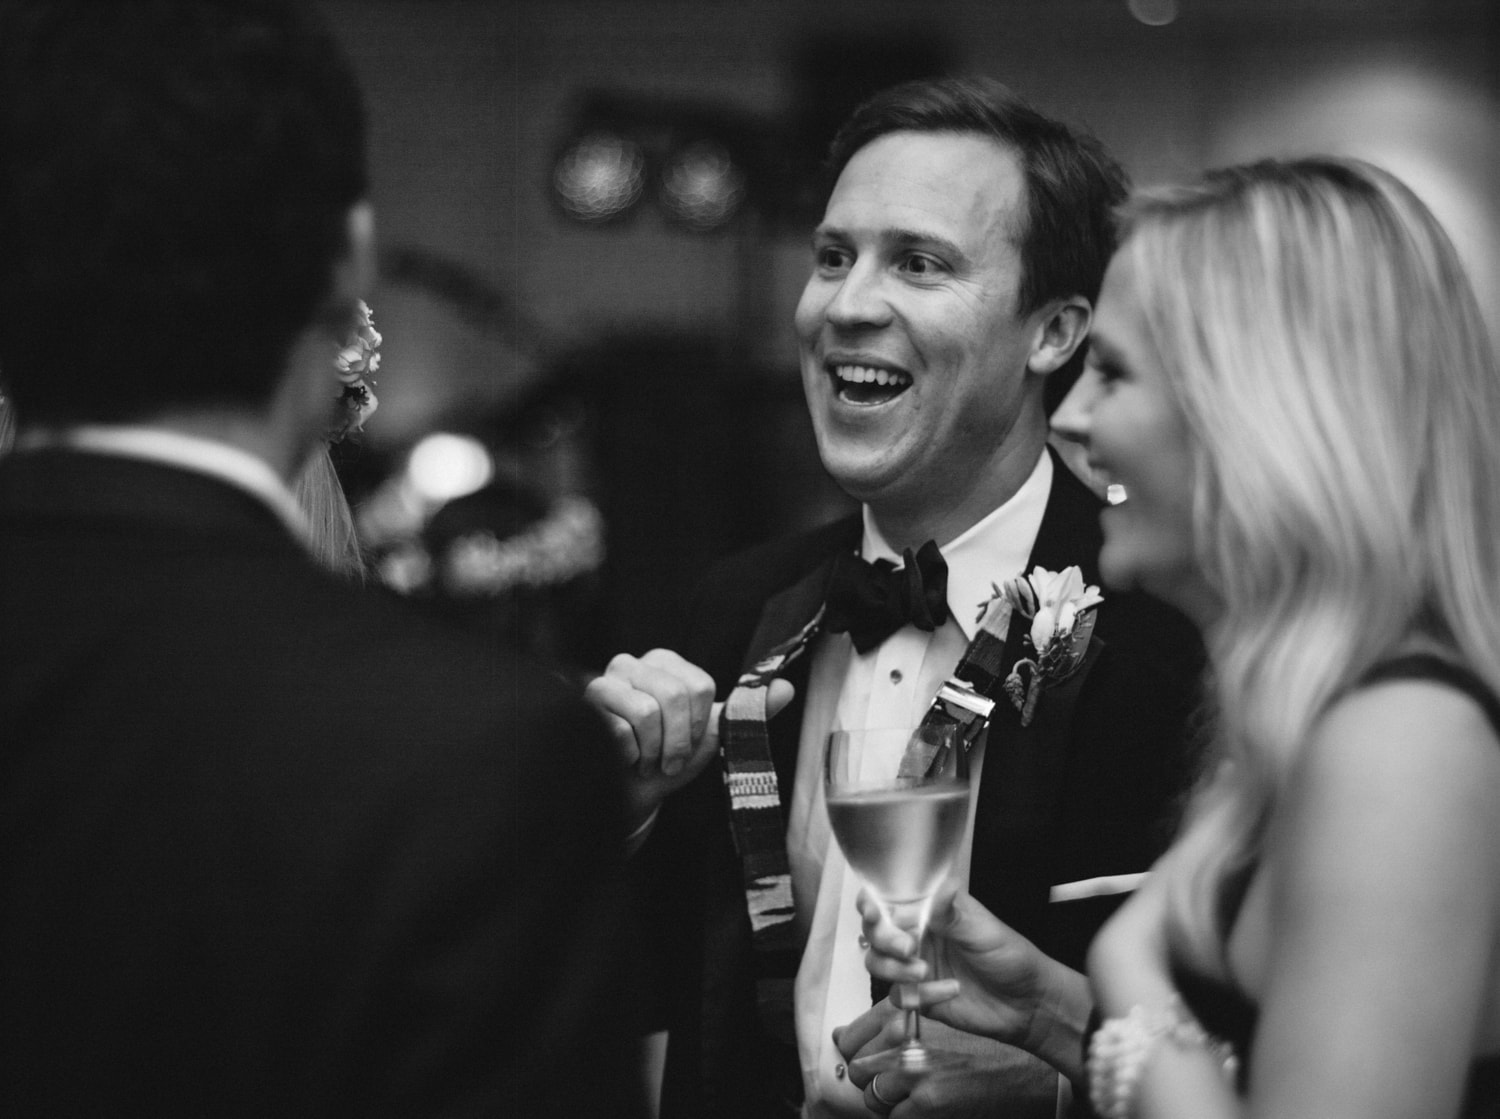 Sam+Kate_Santa_Fe_Wed-728.jpg